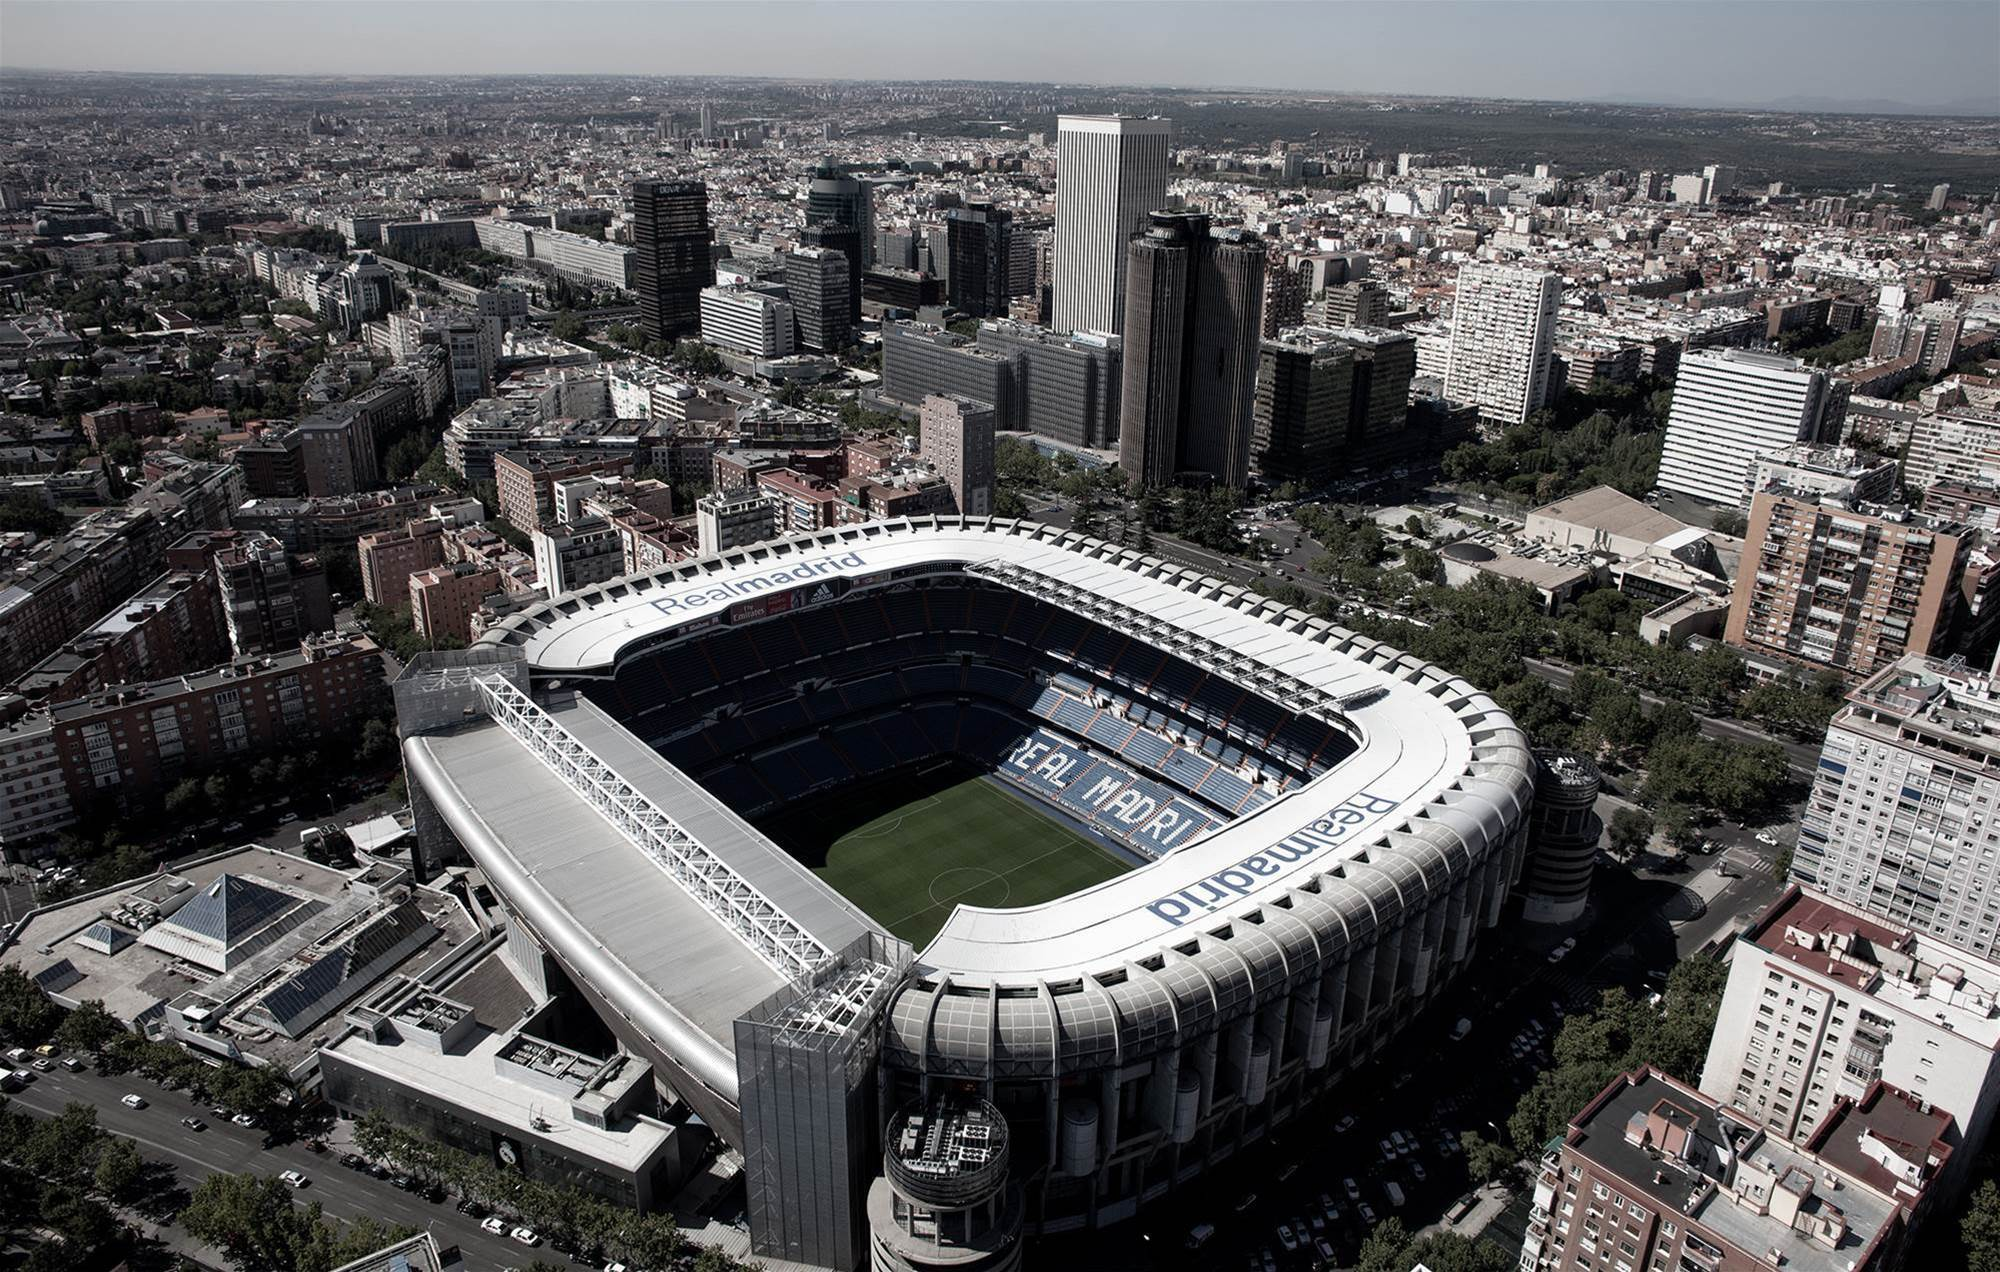 The Santiago Bernabeu: A temple of football